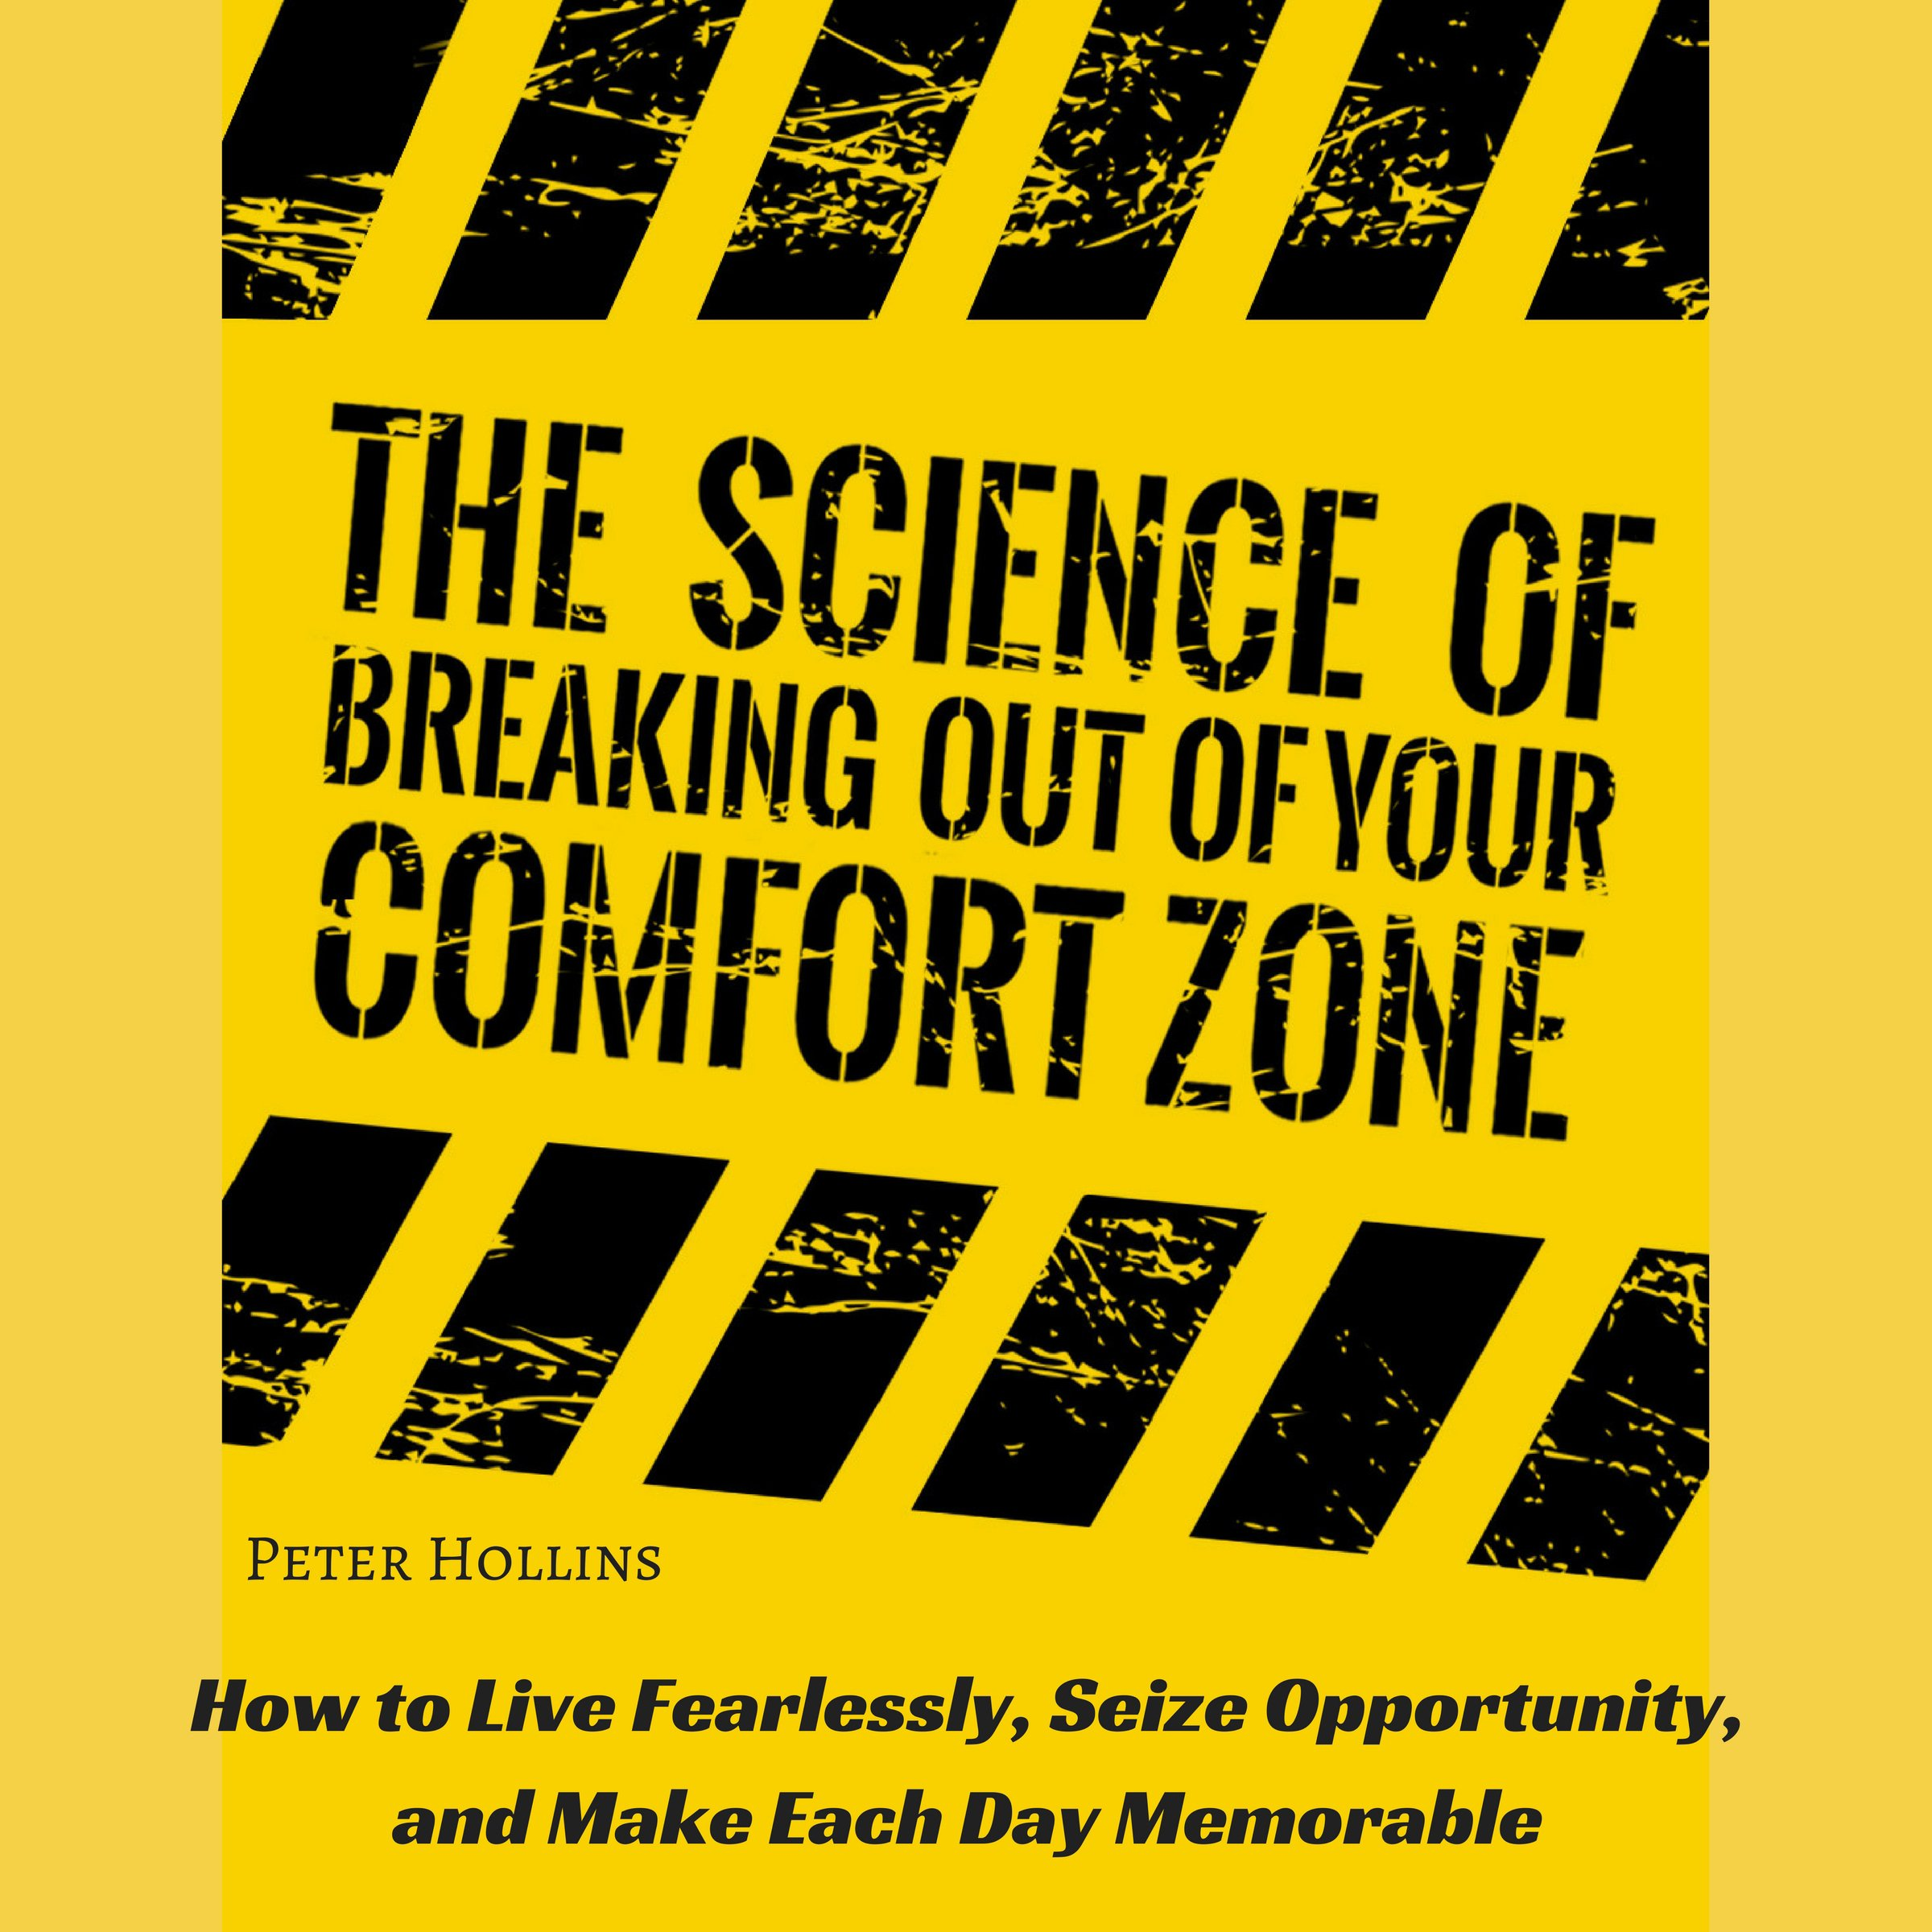 The Science of Breaking Out of Your Comfort Zone: How to Live Fearlessly Seize Opportunity and Make Each Day Memorable